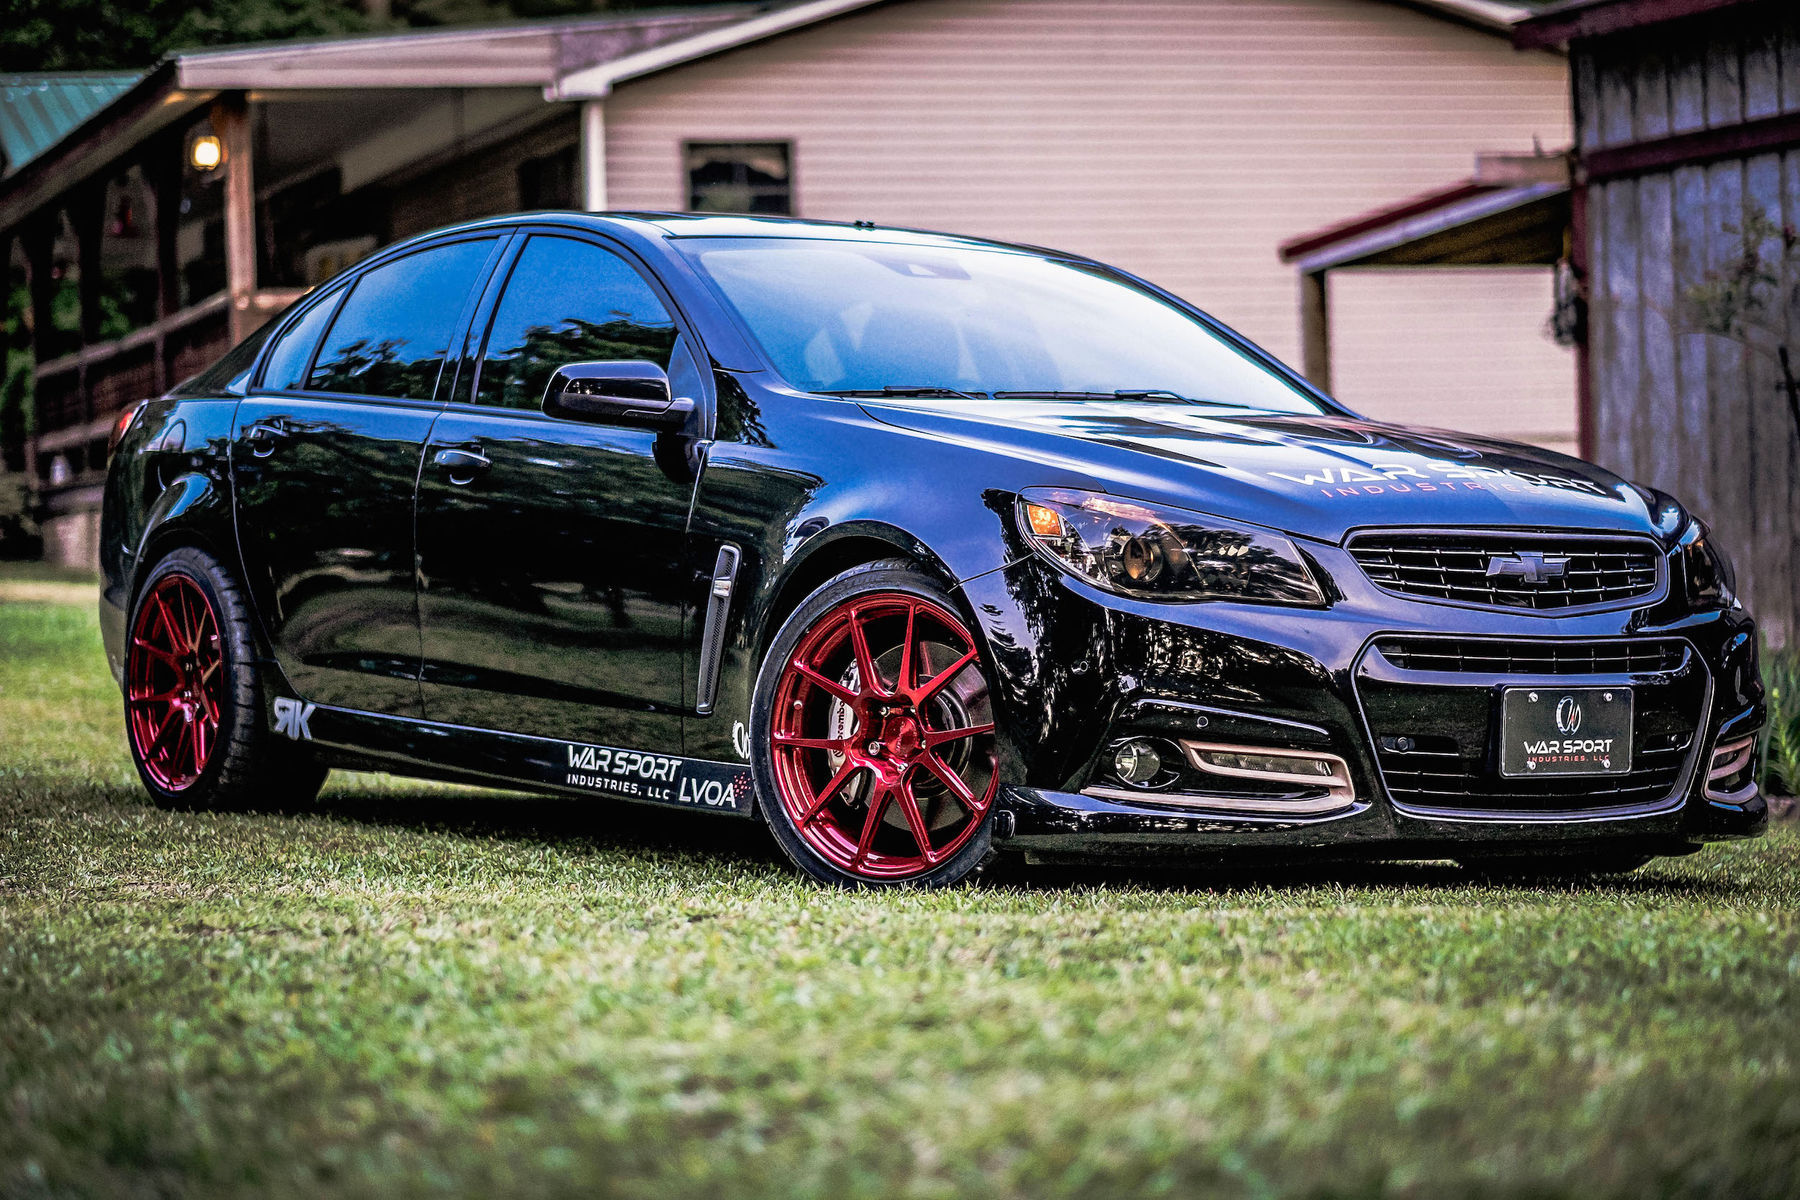 2015 Chevrolet SS | Chevy SS on Forgeline GA1R Open Lug Cap Edition Wheels